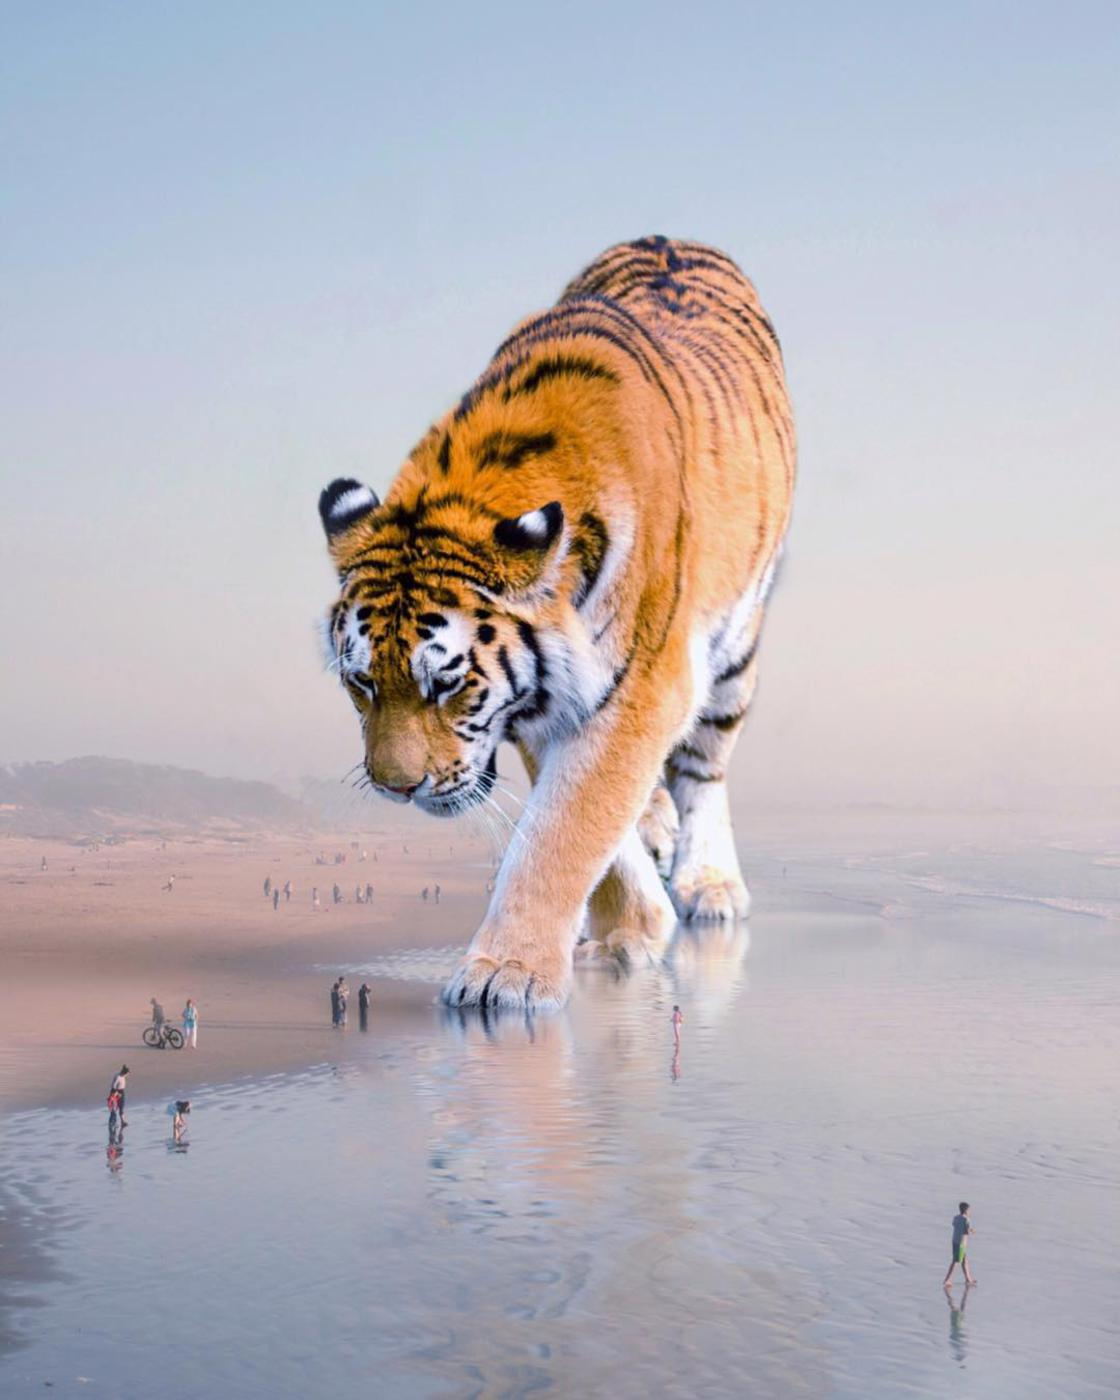 This artist imagines a world populated by gigantic animals